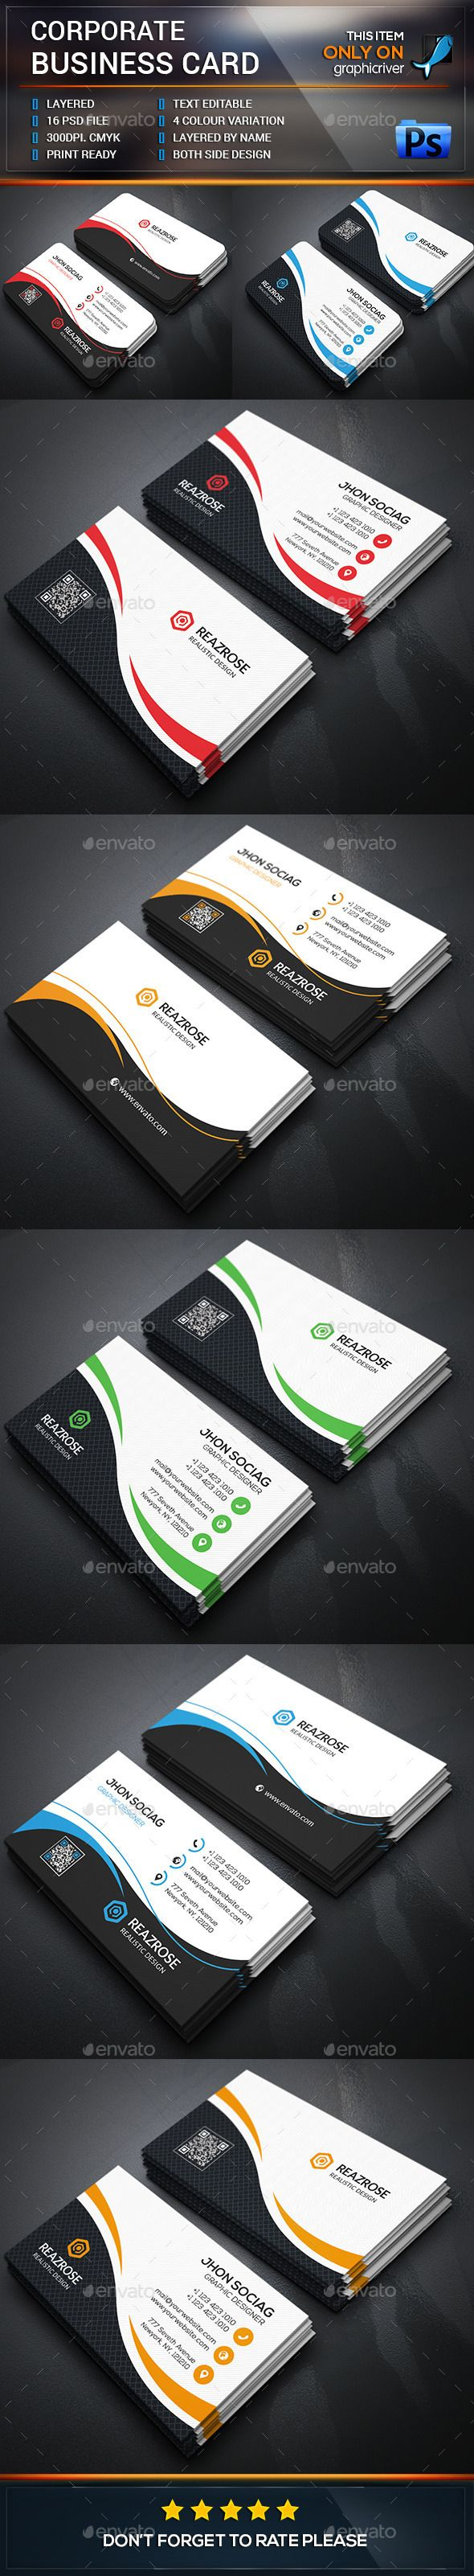 Best 14 Modern Business Card Designs Images On Pinterest Carte De